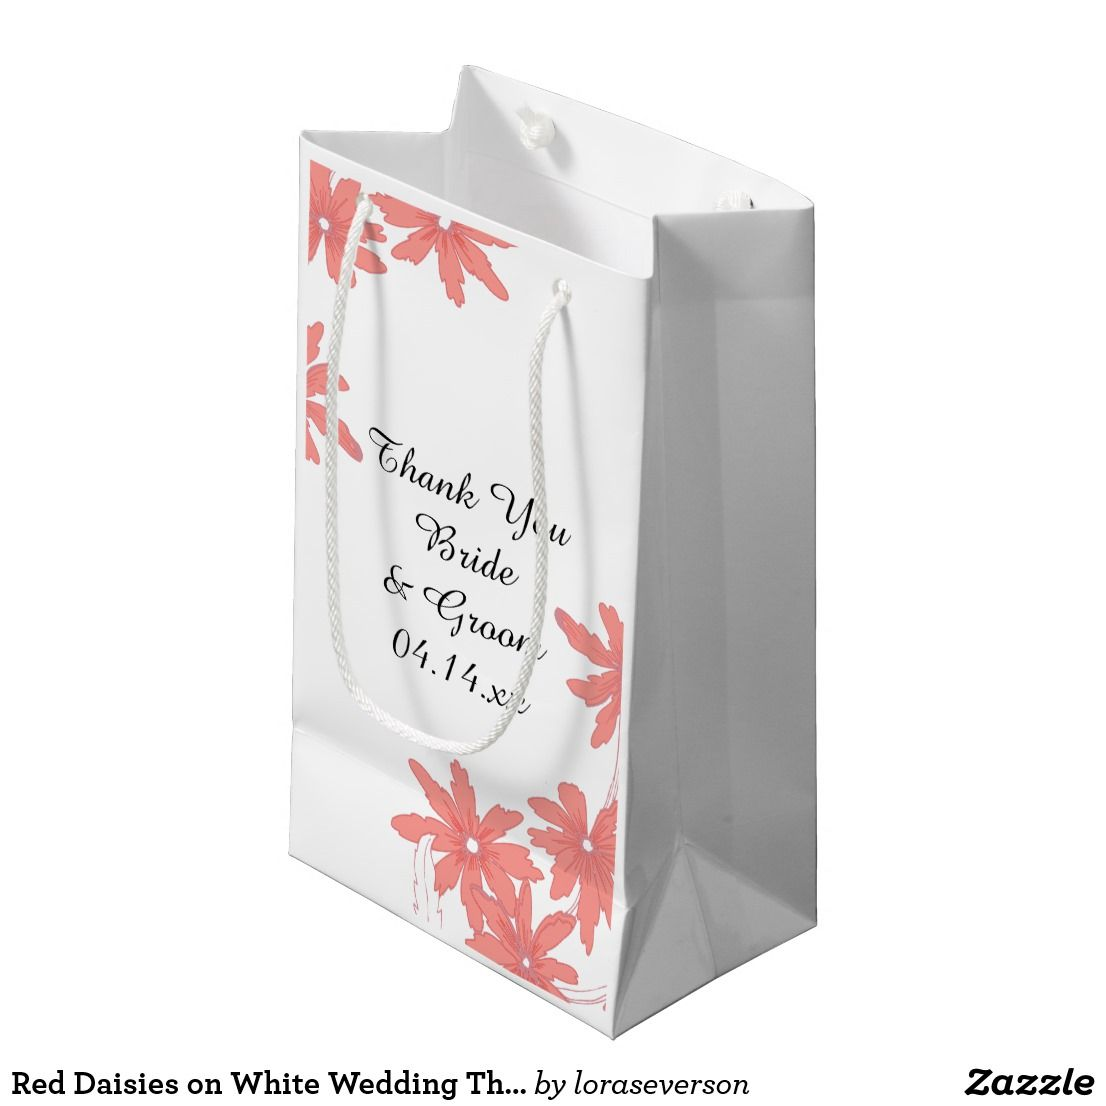 Red Daisies on White Wedding Thank You Small Gift Bag   Wedding ...